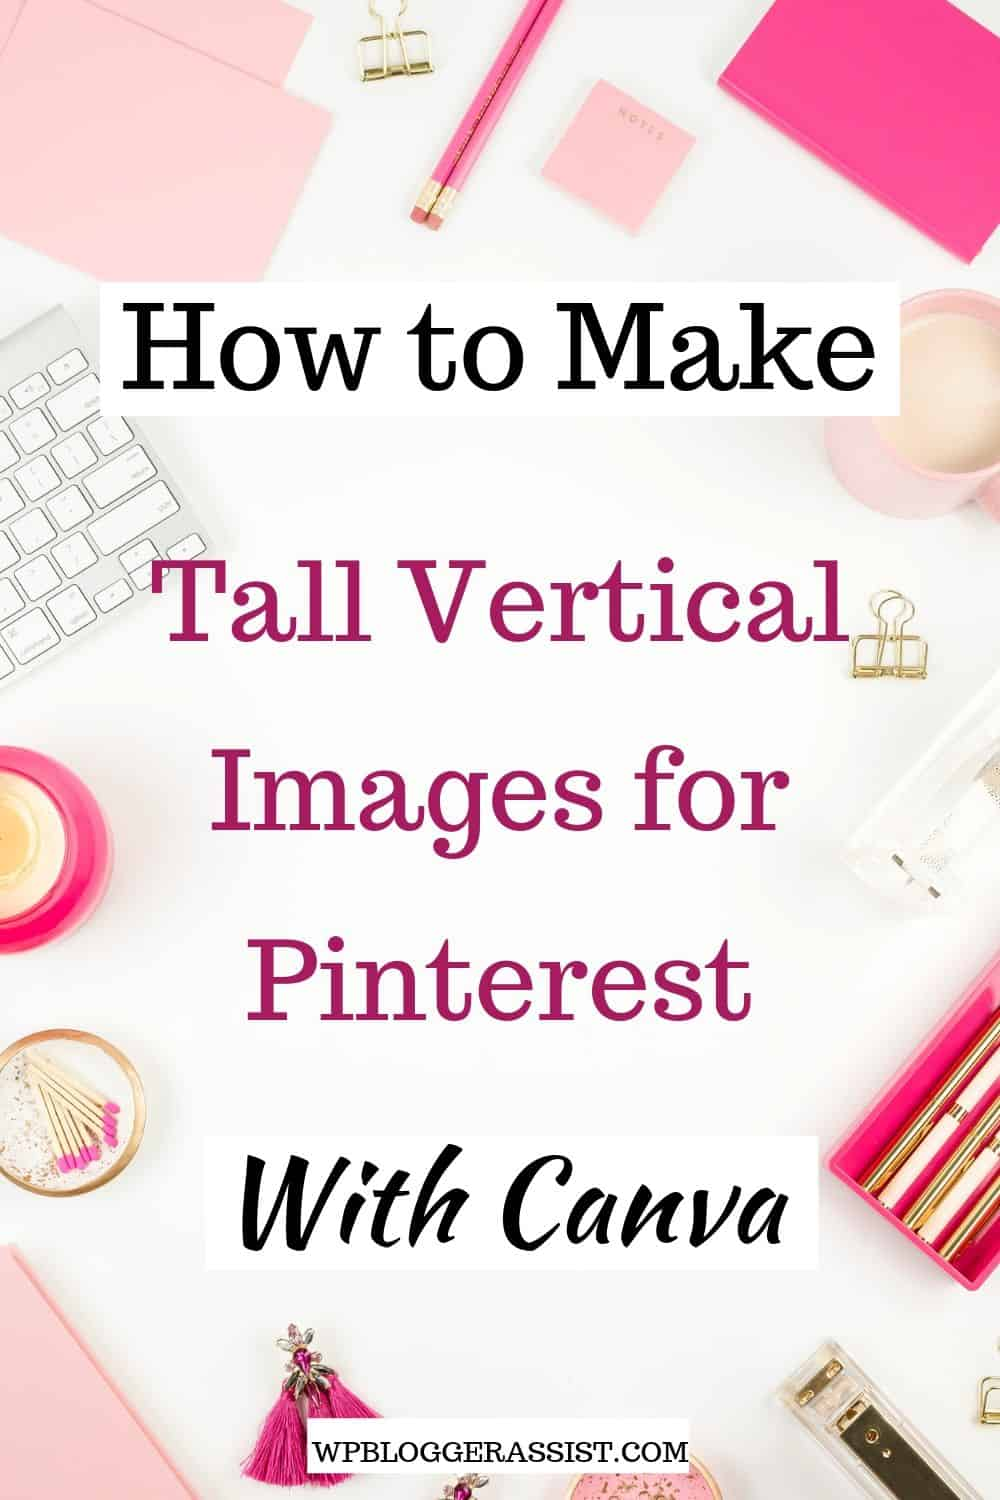 How to Make Tall Vertical Images for Pinterest Twitter